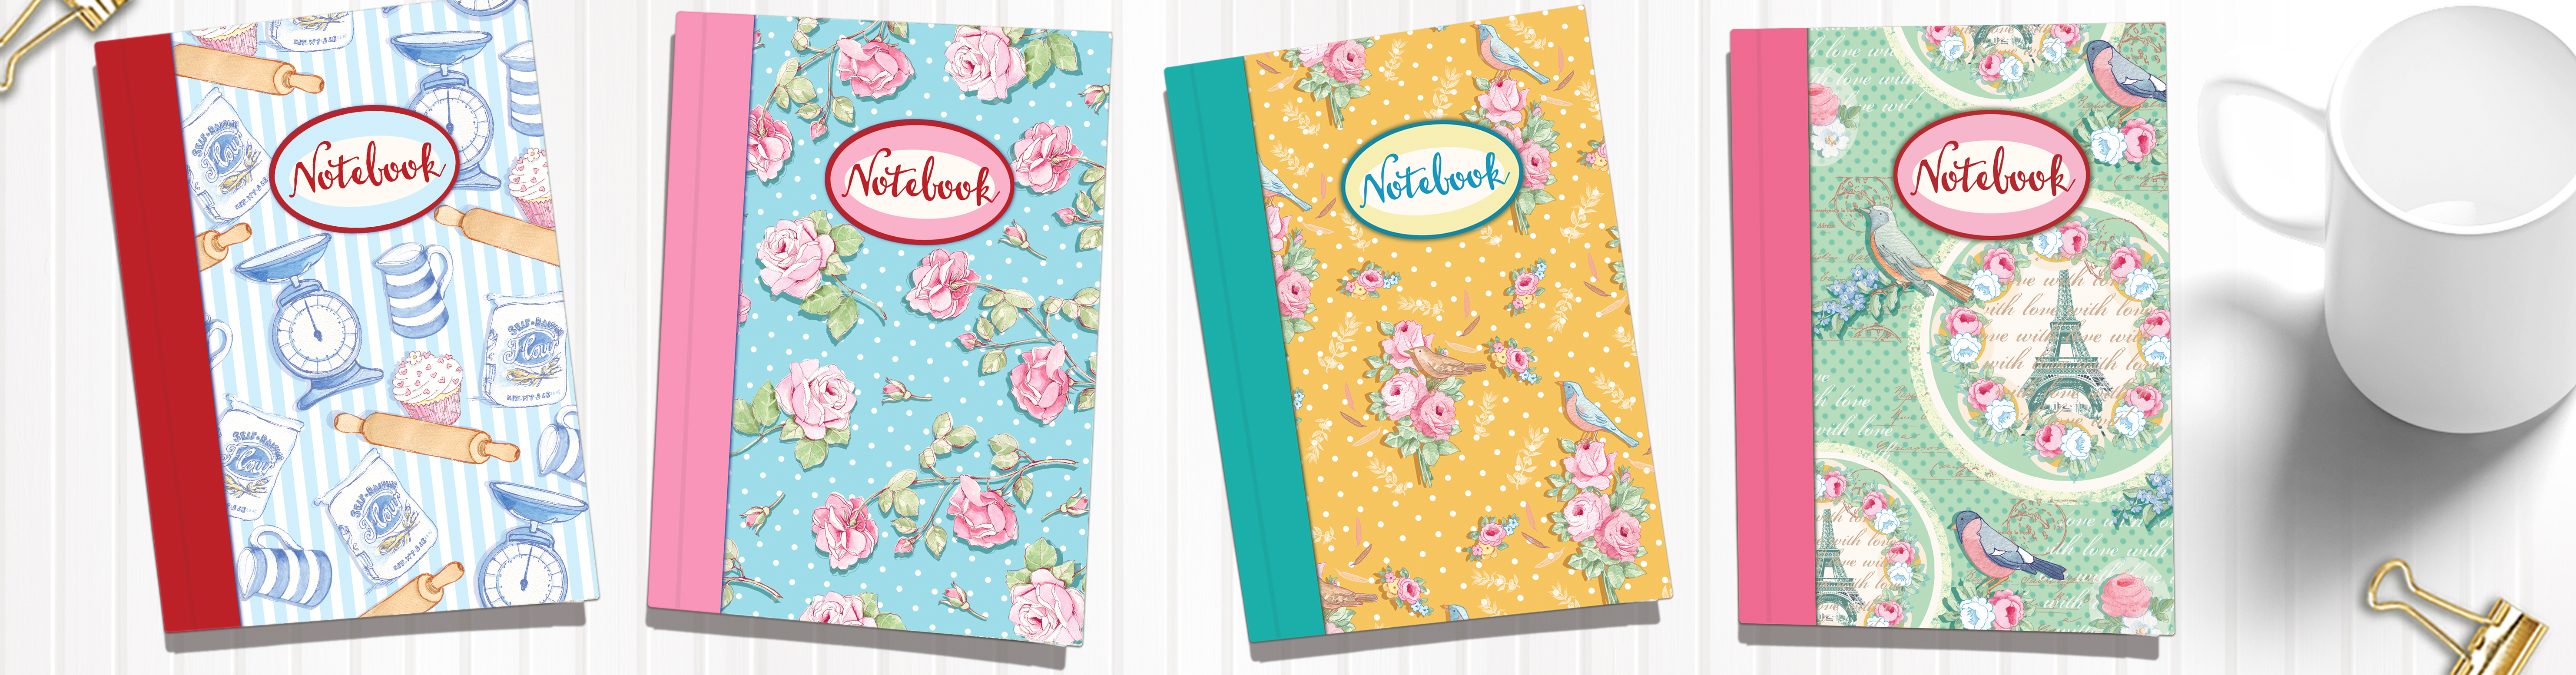 New April Rose Notebooks